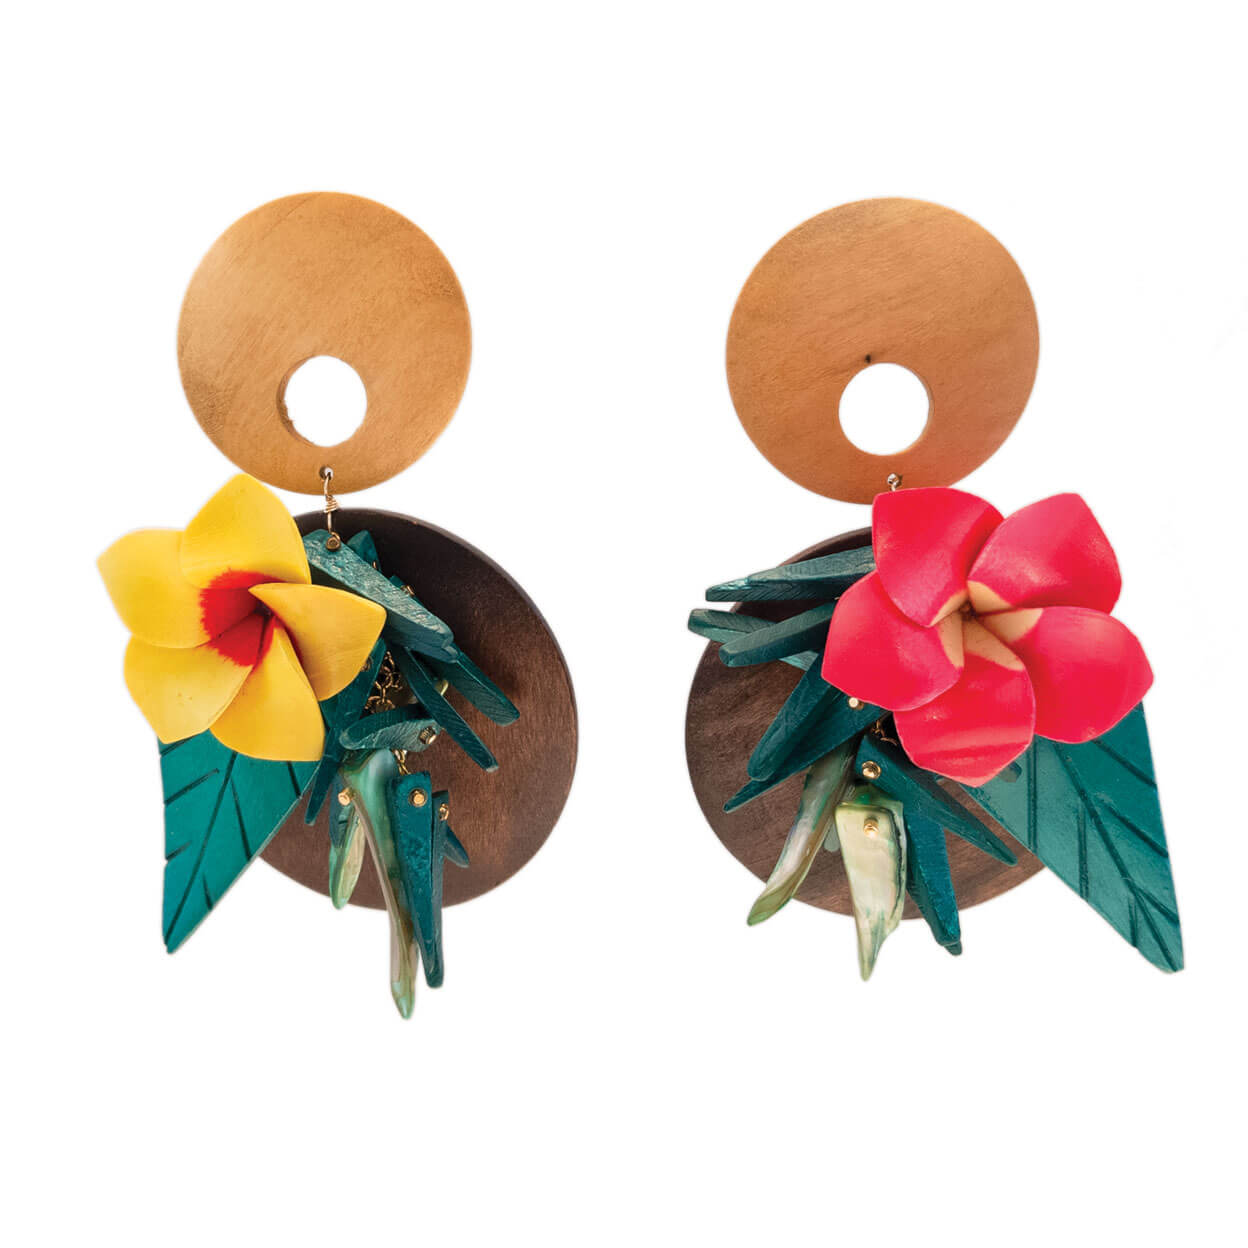 tropical style wood earrings with yellow and pink flowers and green leaves with coco sticks and mother of pearl